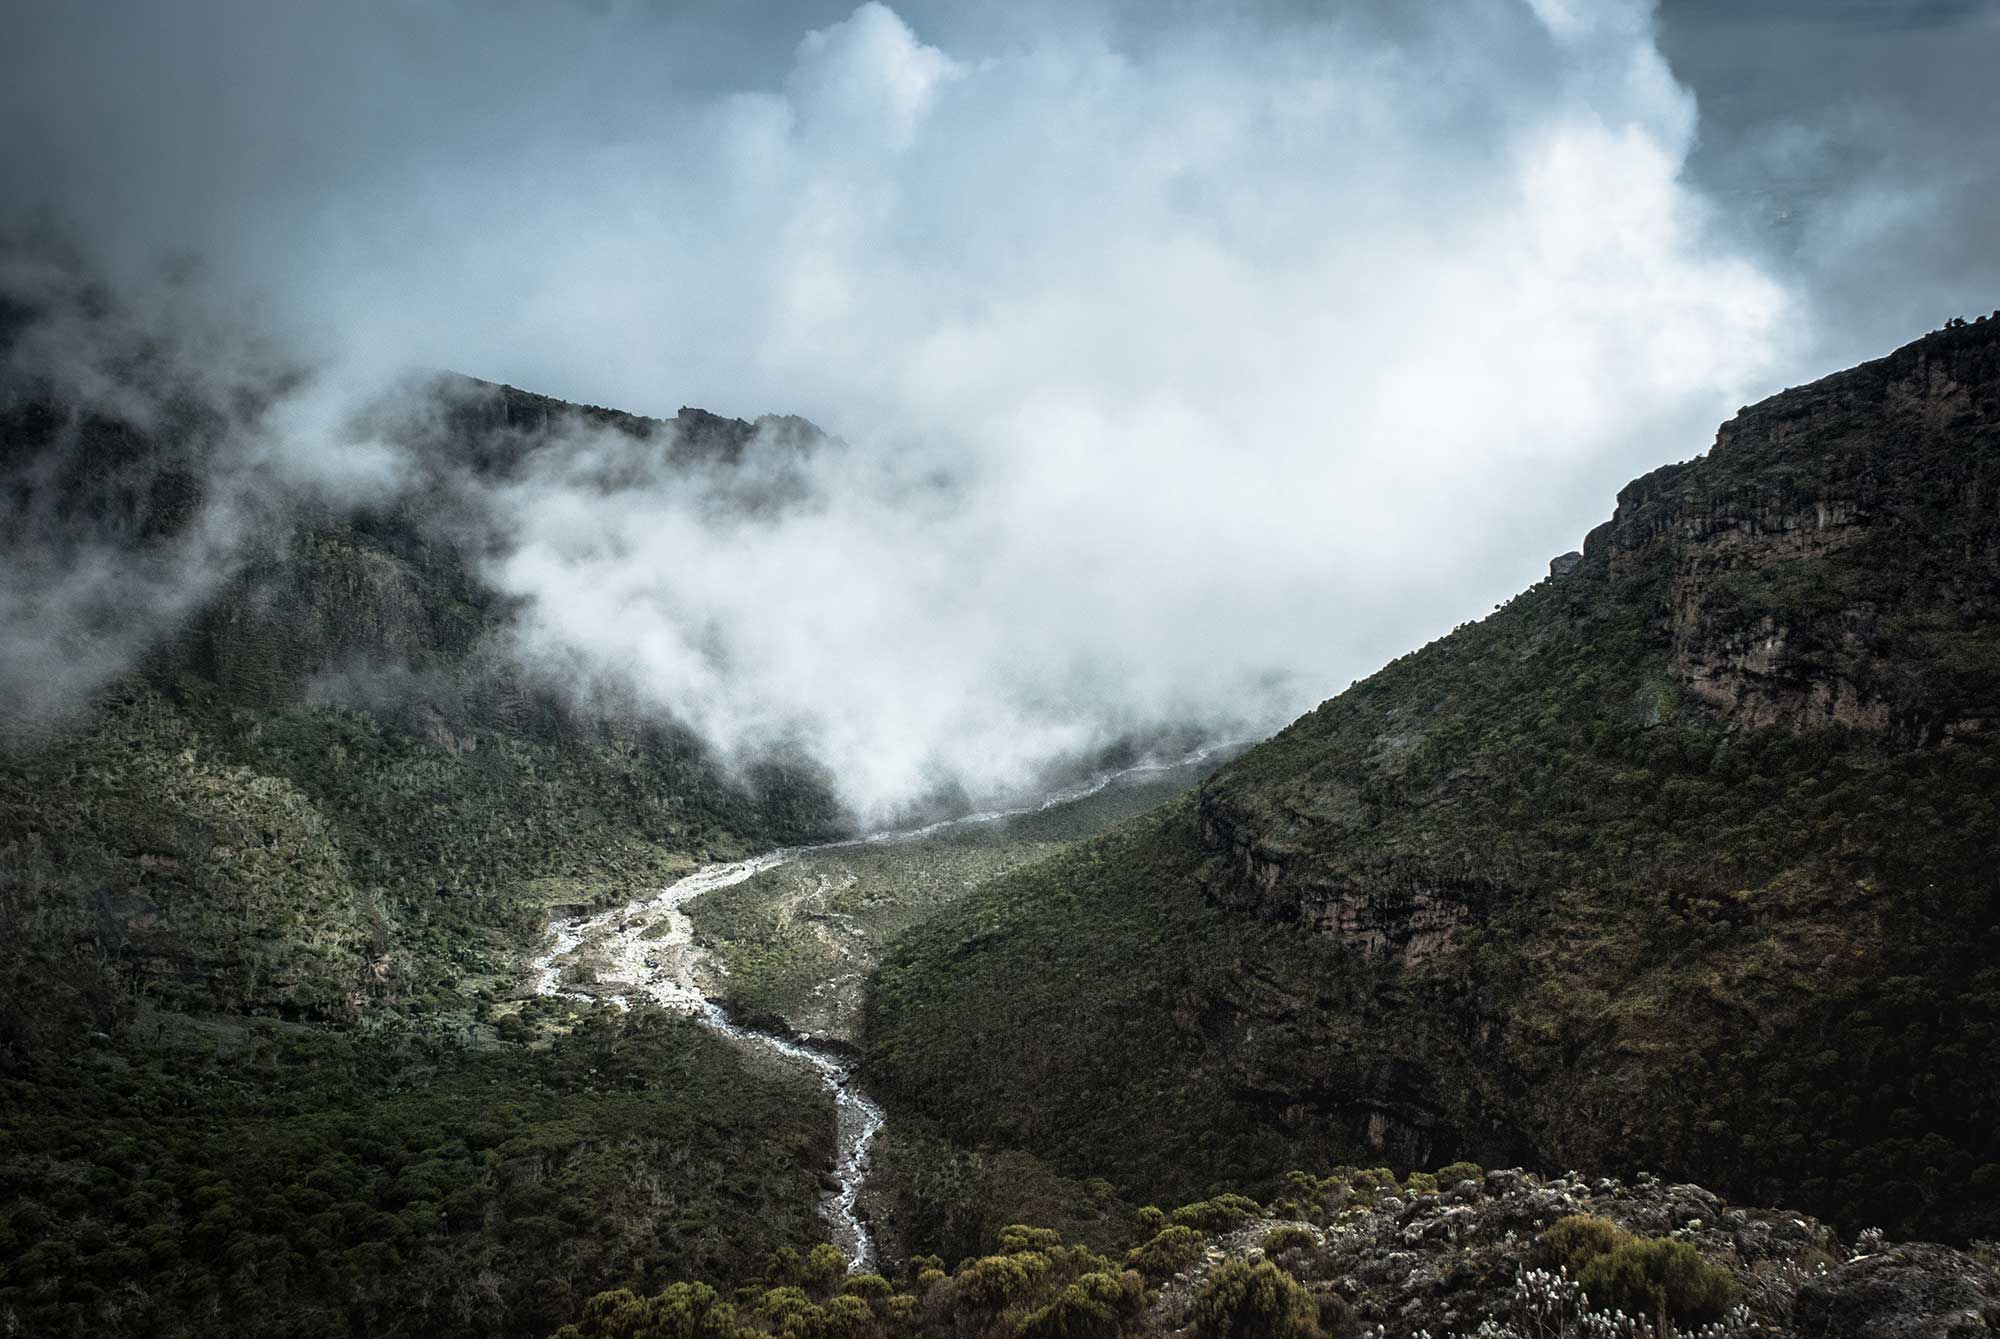 Finally at Barranco Camp, the clouds began to lift rewarding us with incredible views of the valley below the camp.